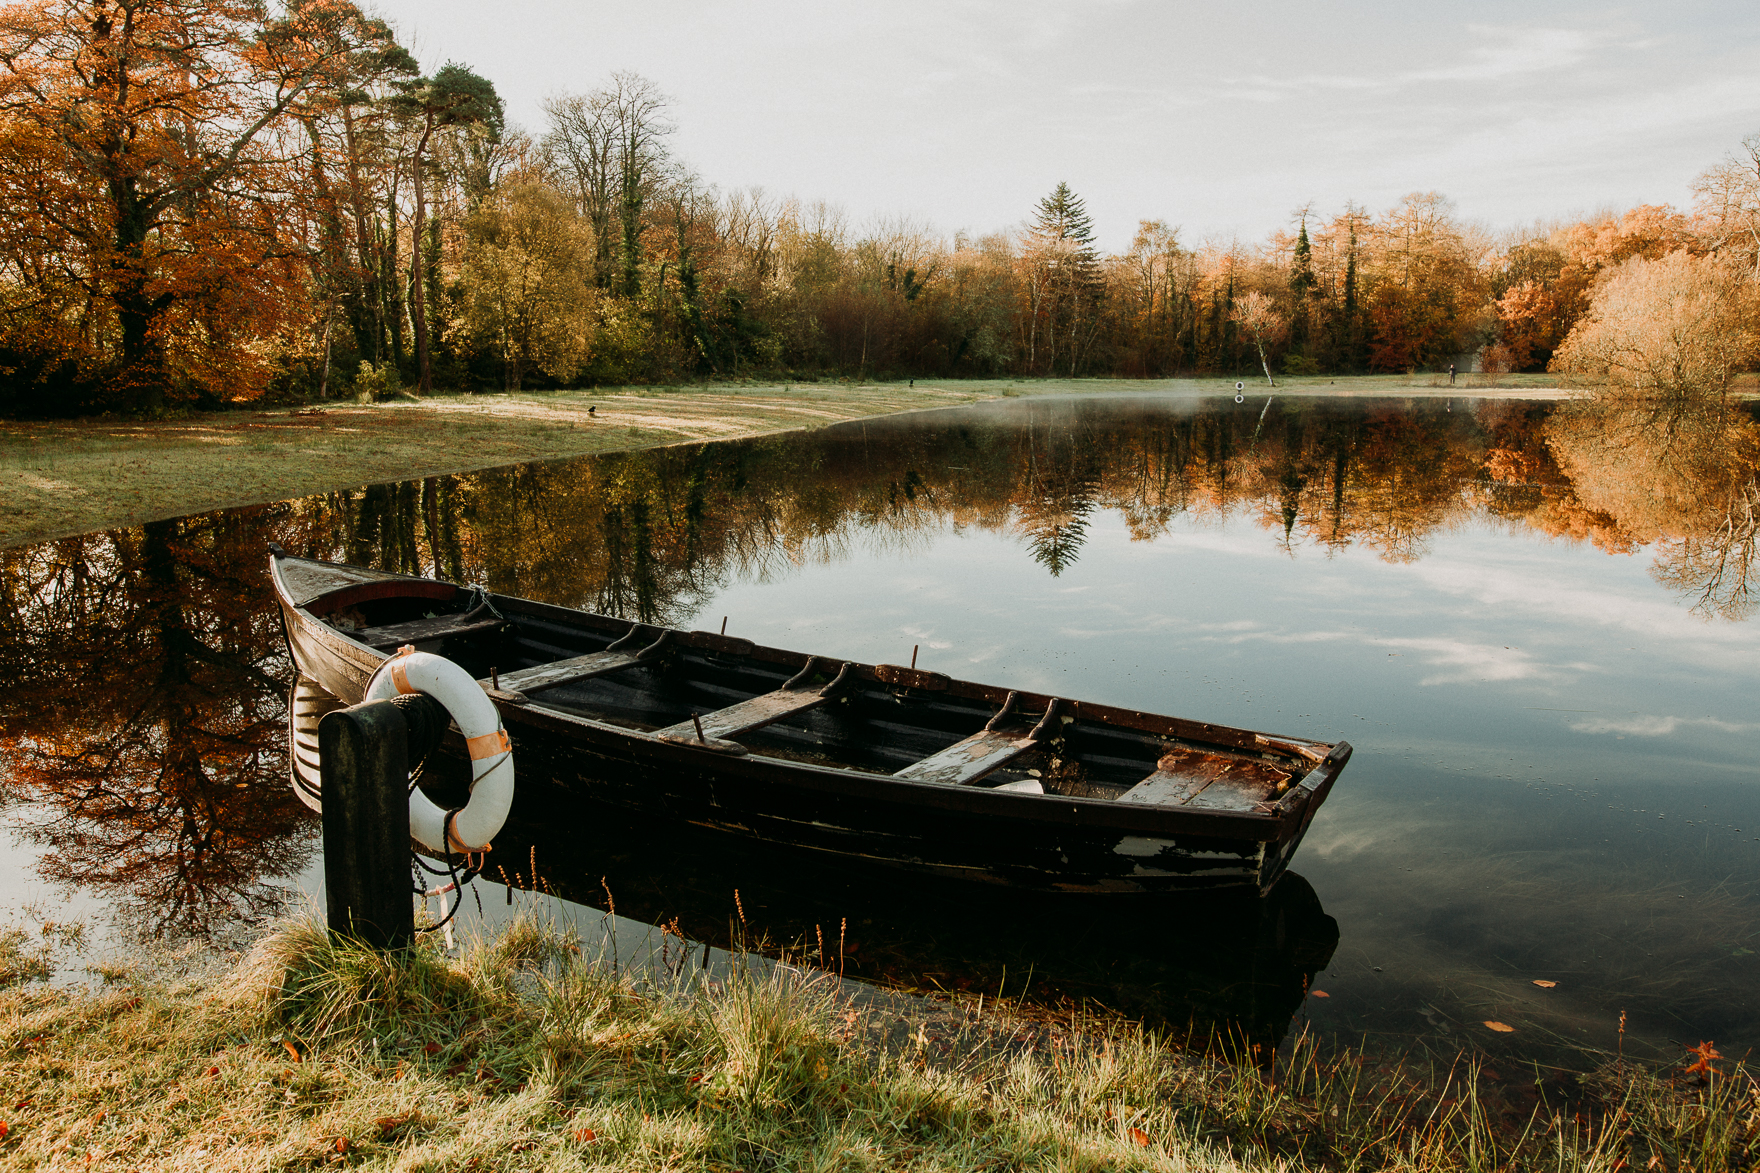 A small boat in a body of water